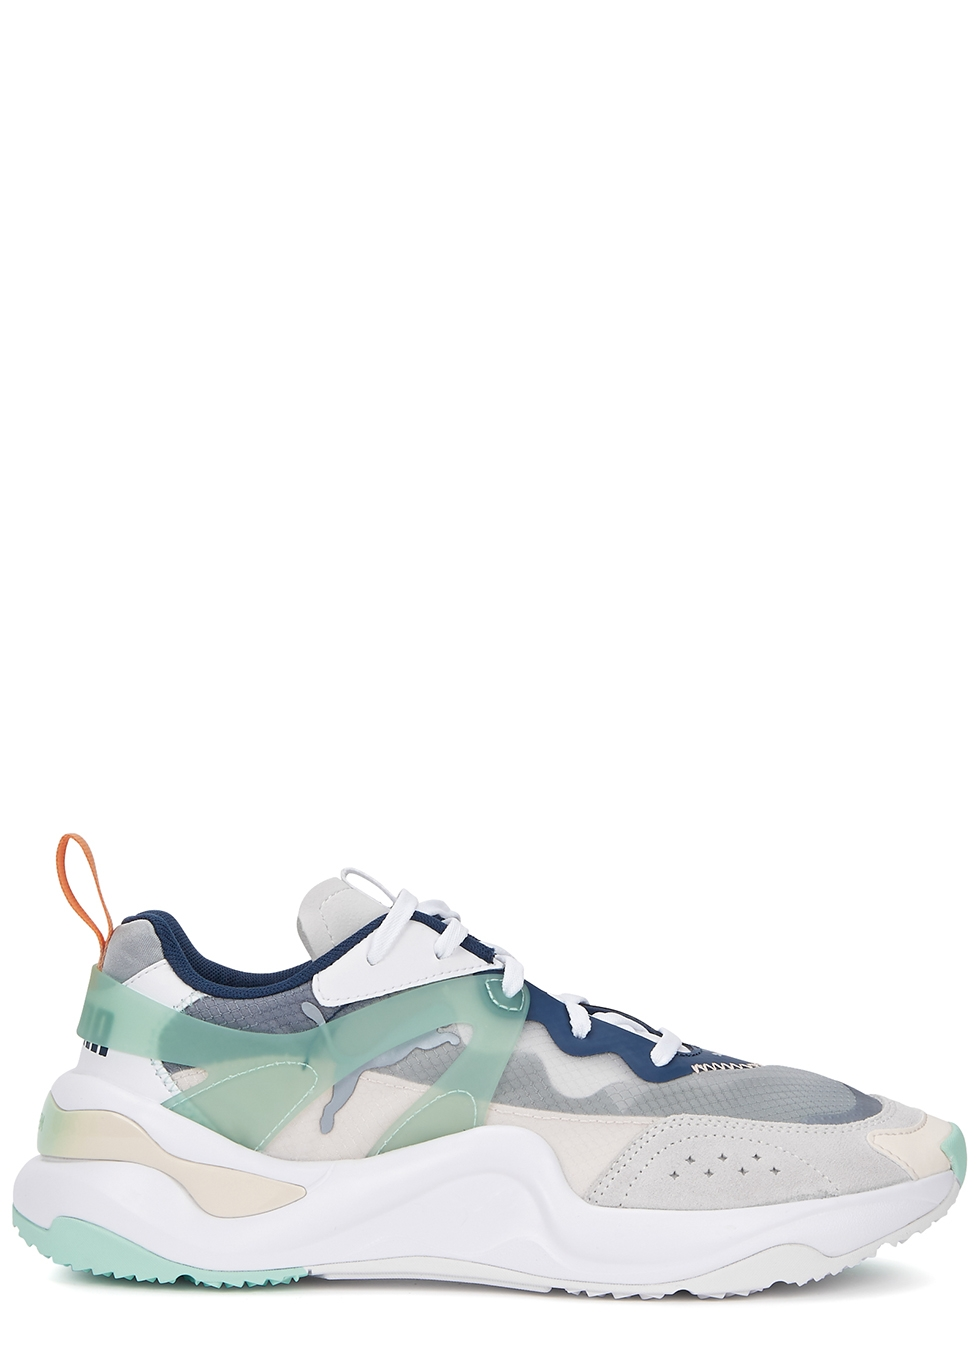 Rise panelled mesh sneakers